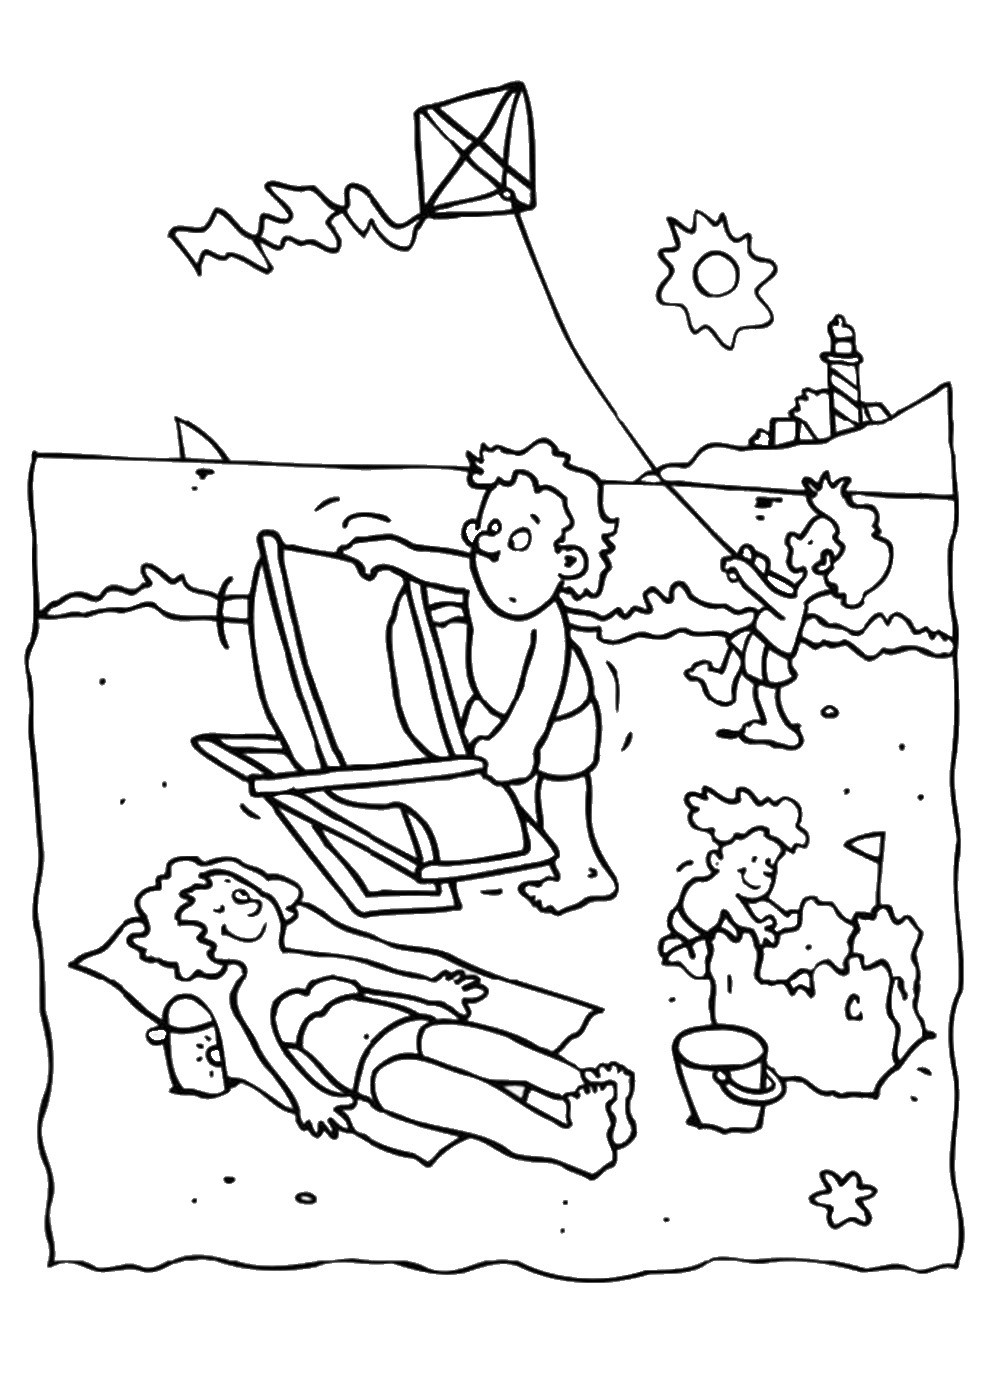 Summer Coloring Sheet  Summer Holiday Coloring Pages